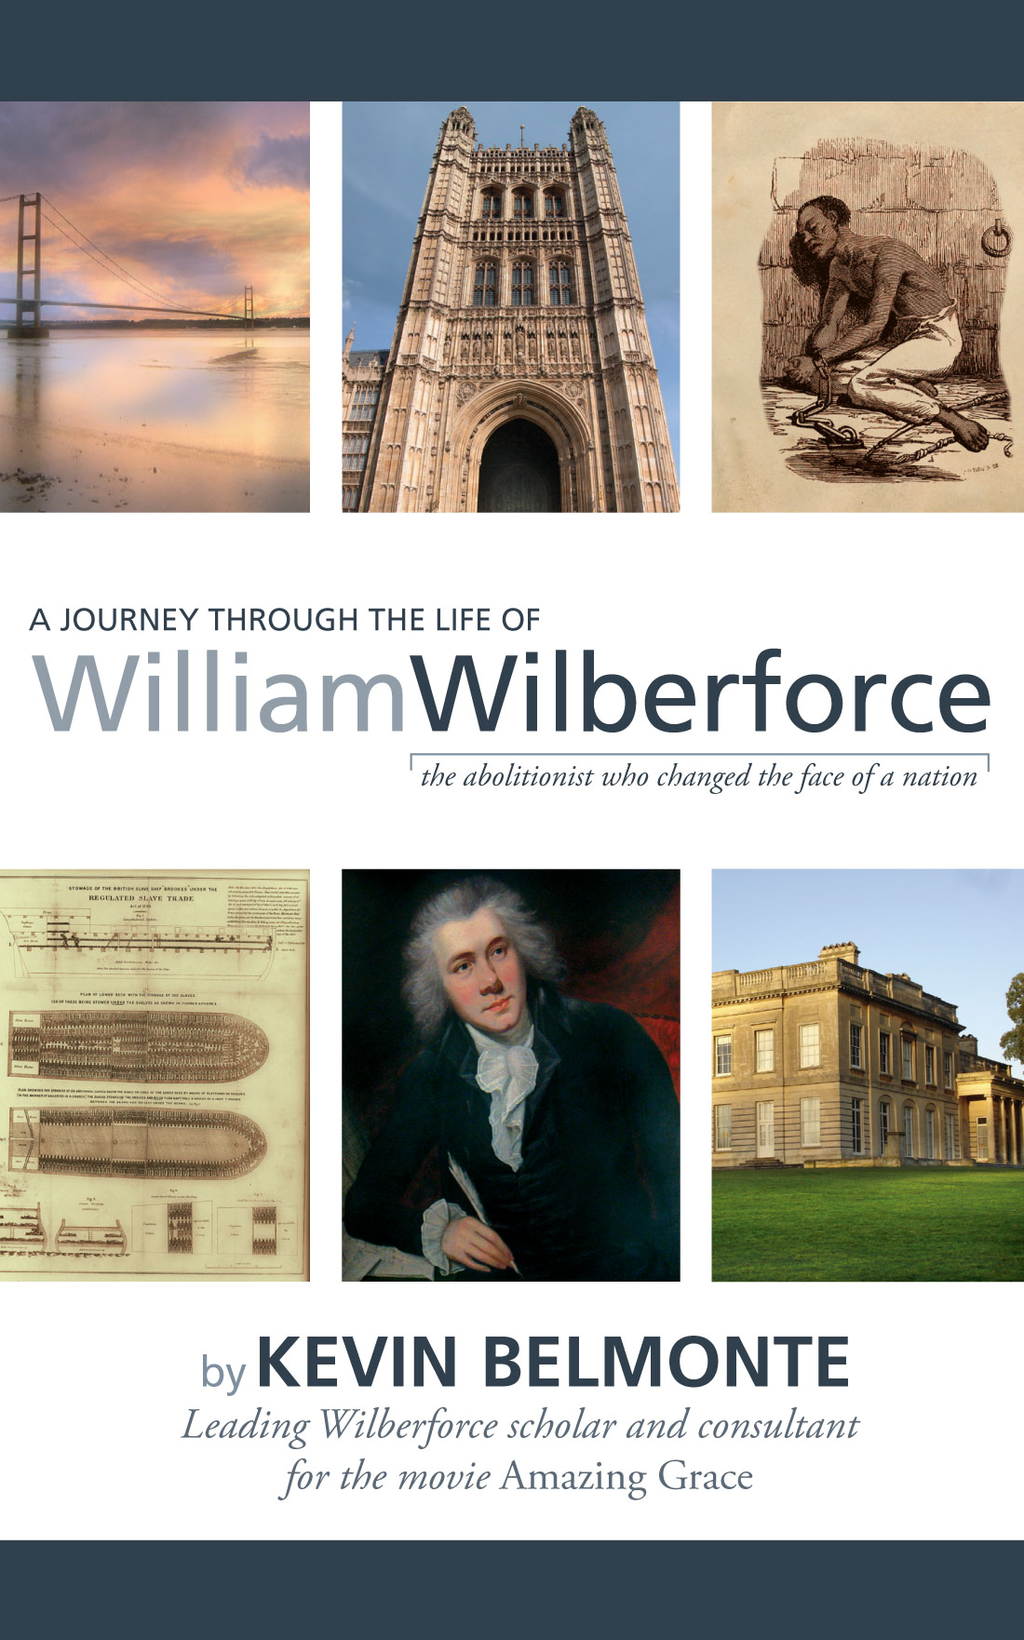 Journey Through the Life of William Wilberforce, A